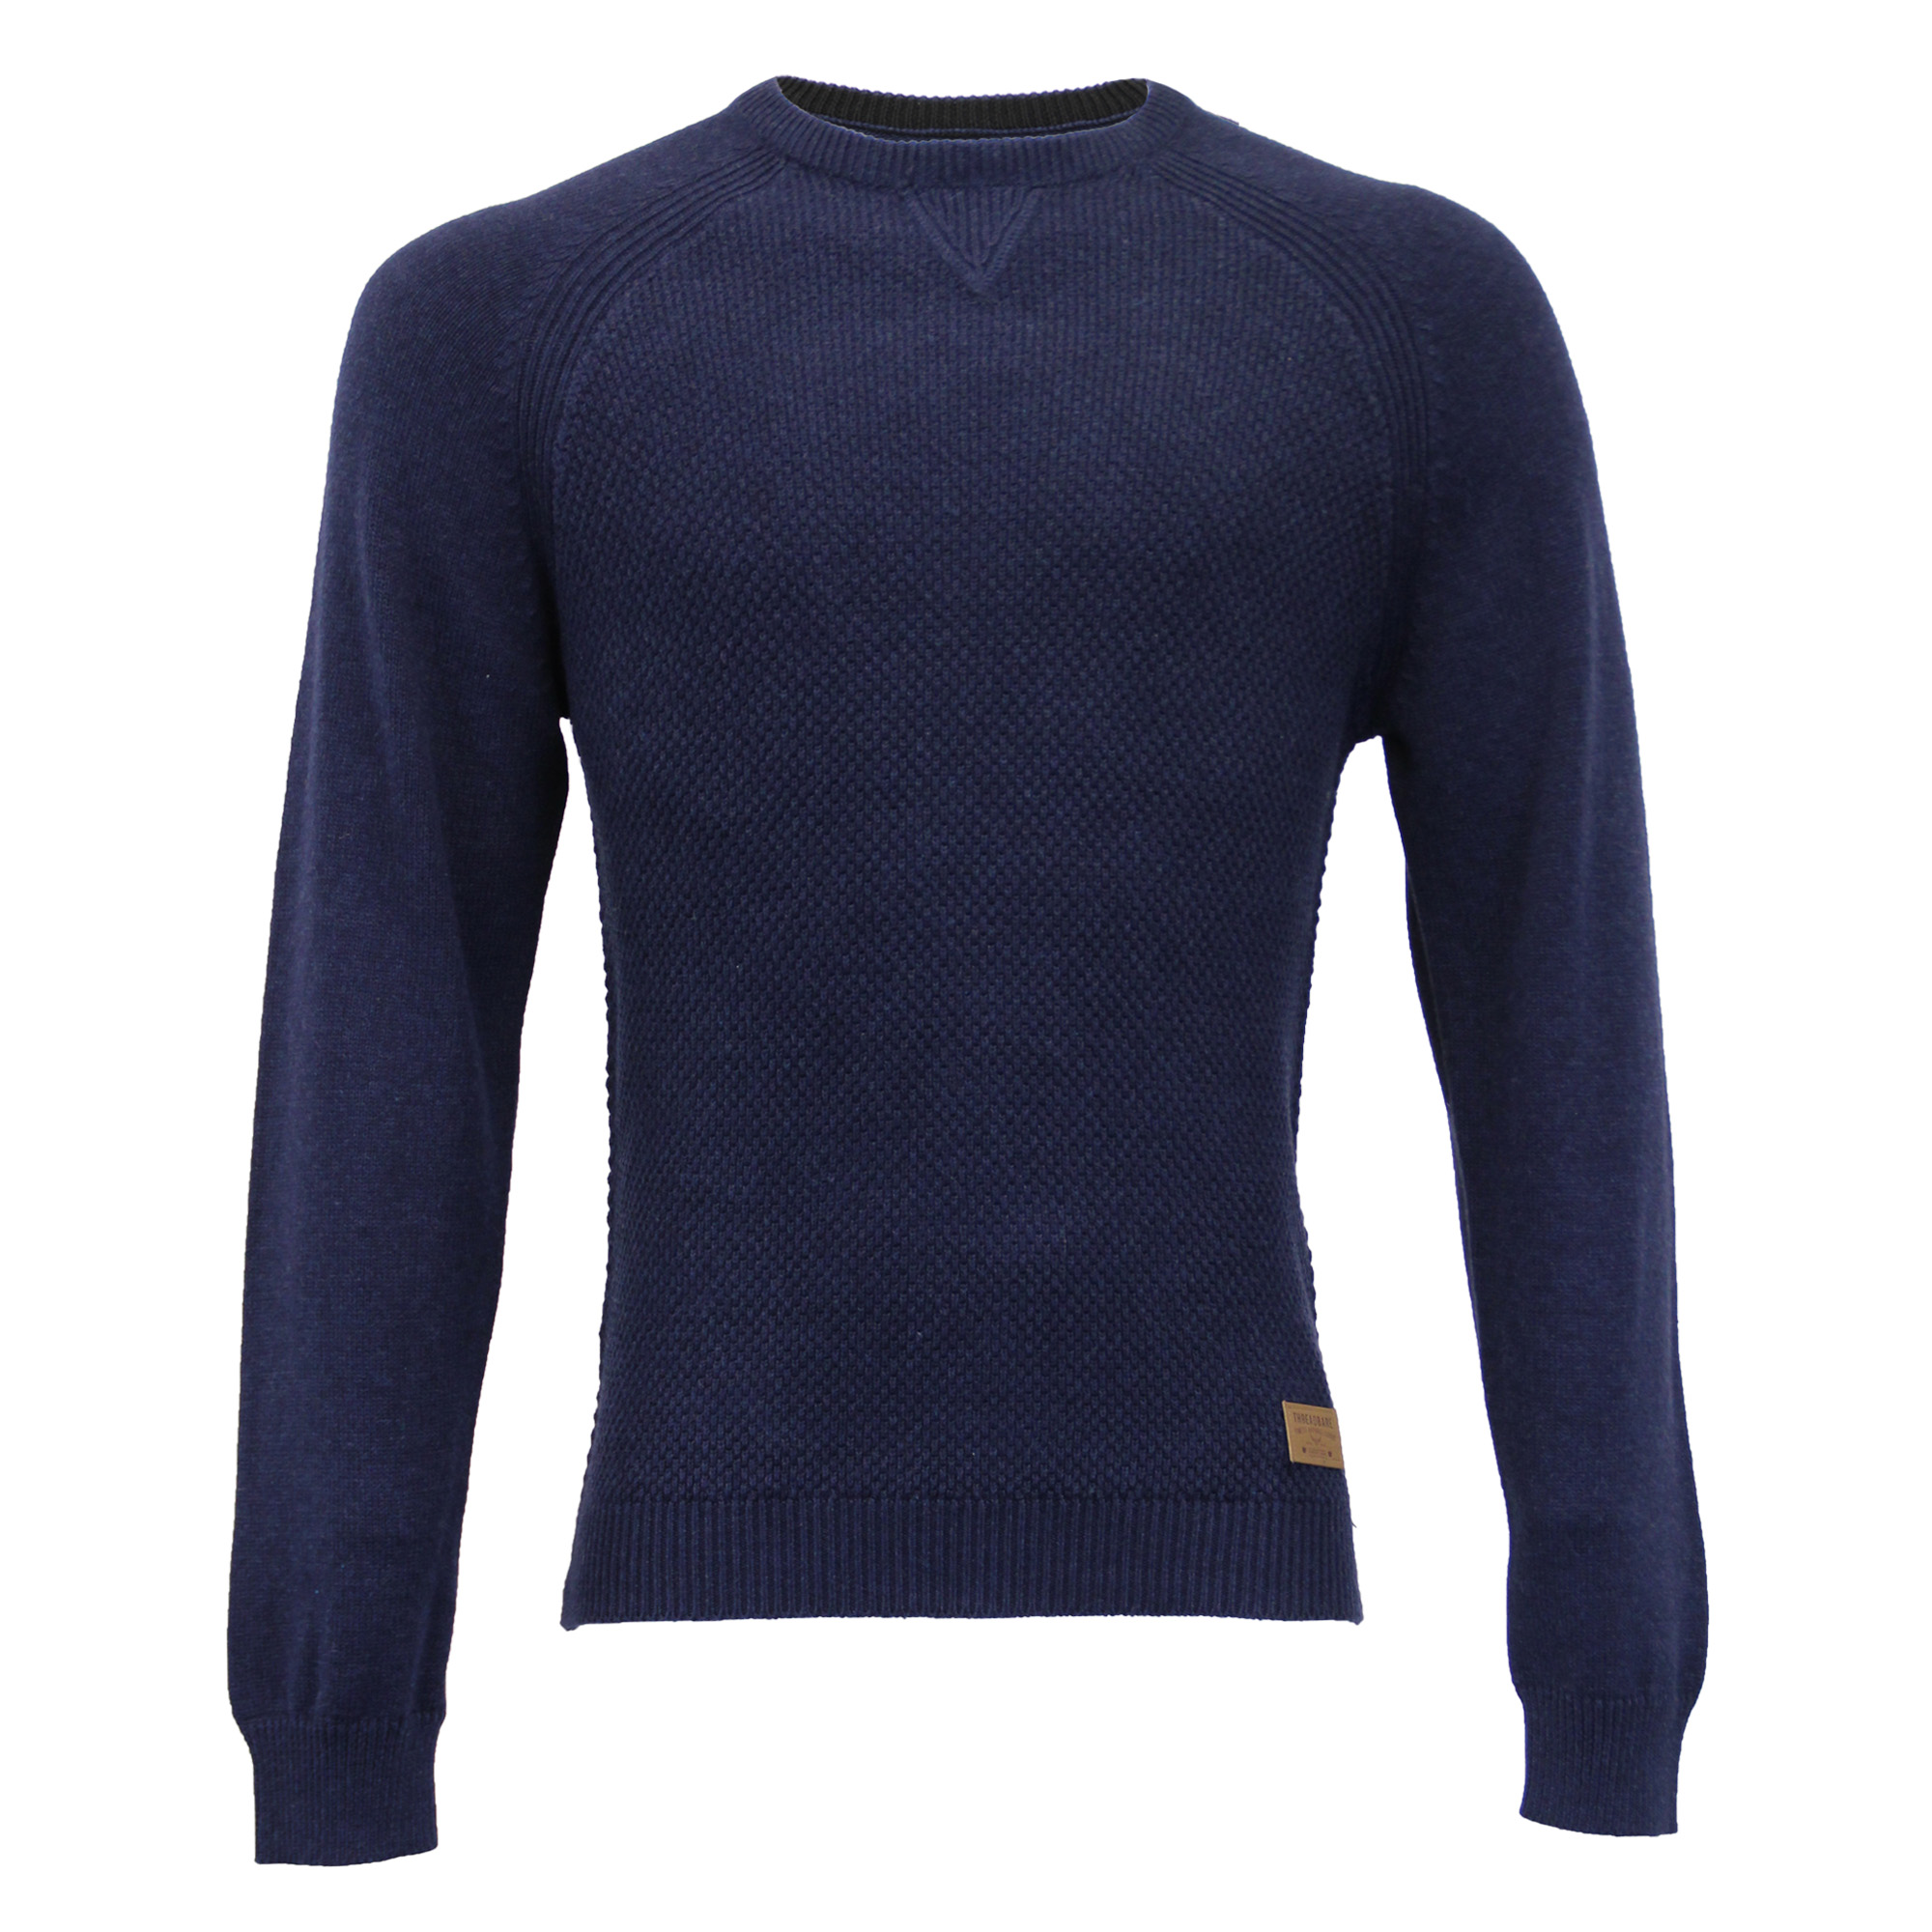 Mens-Jumper-Threadbare-Knitted-Cotton-Sweater-Half-Zip-Pullover-Top-Winter-New thumbnail 21